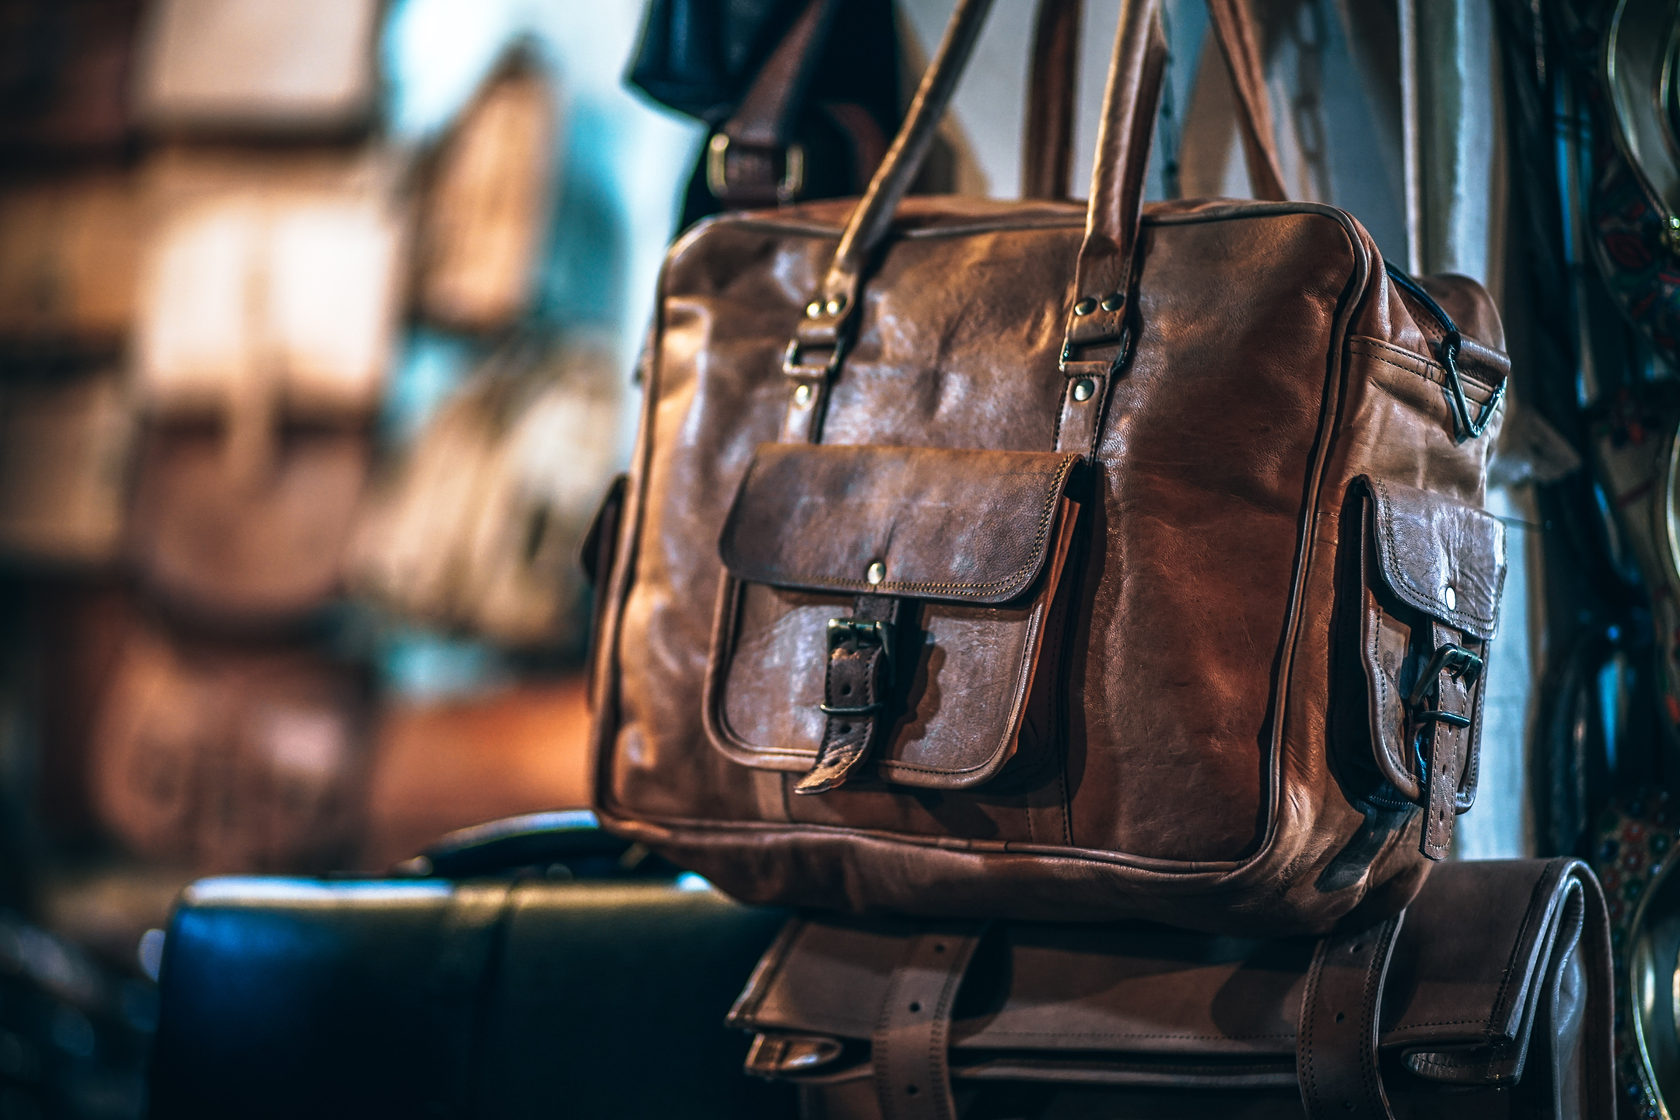 Types of Luggage Needed for a Family Vacation